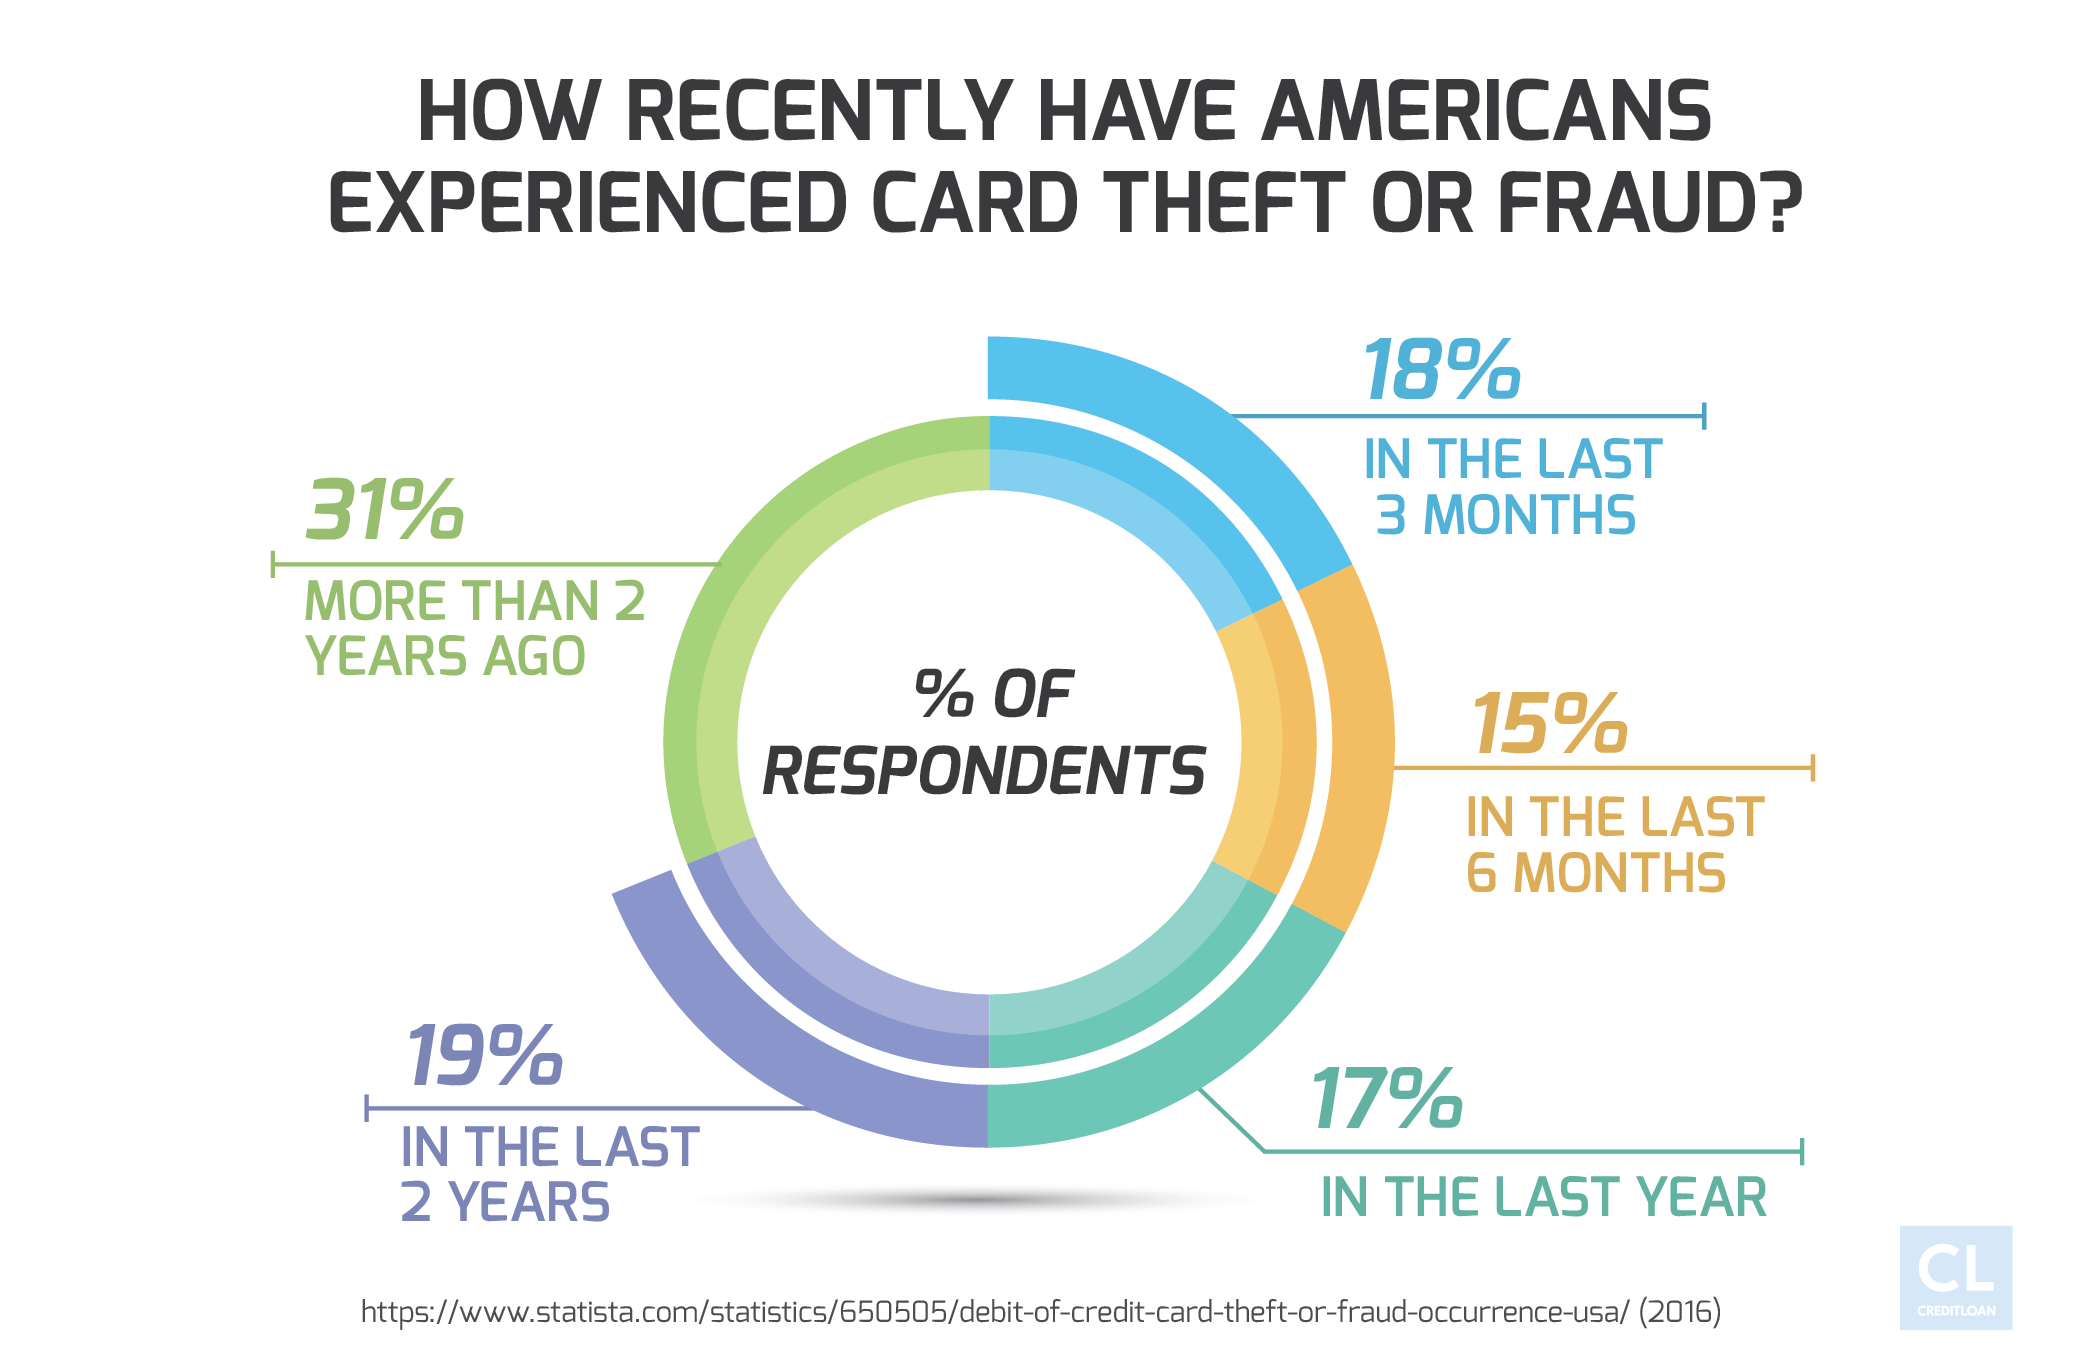 Statistics Showing When Americans Experienced Card Theft or Fraud